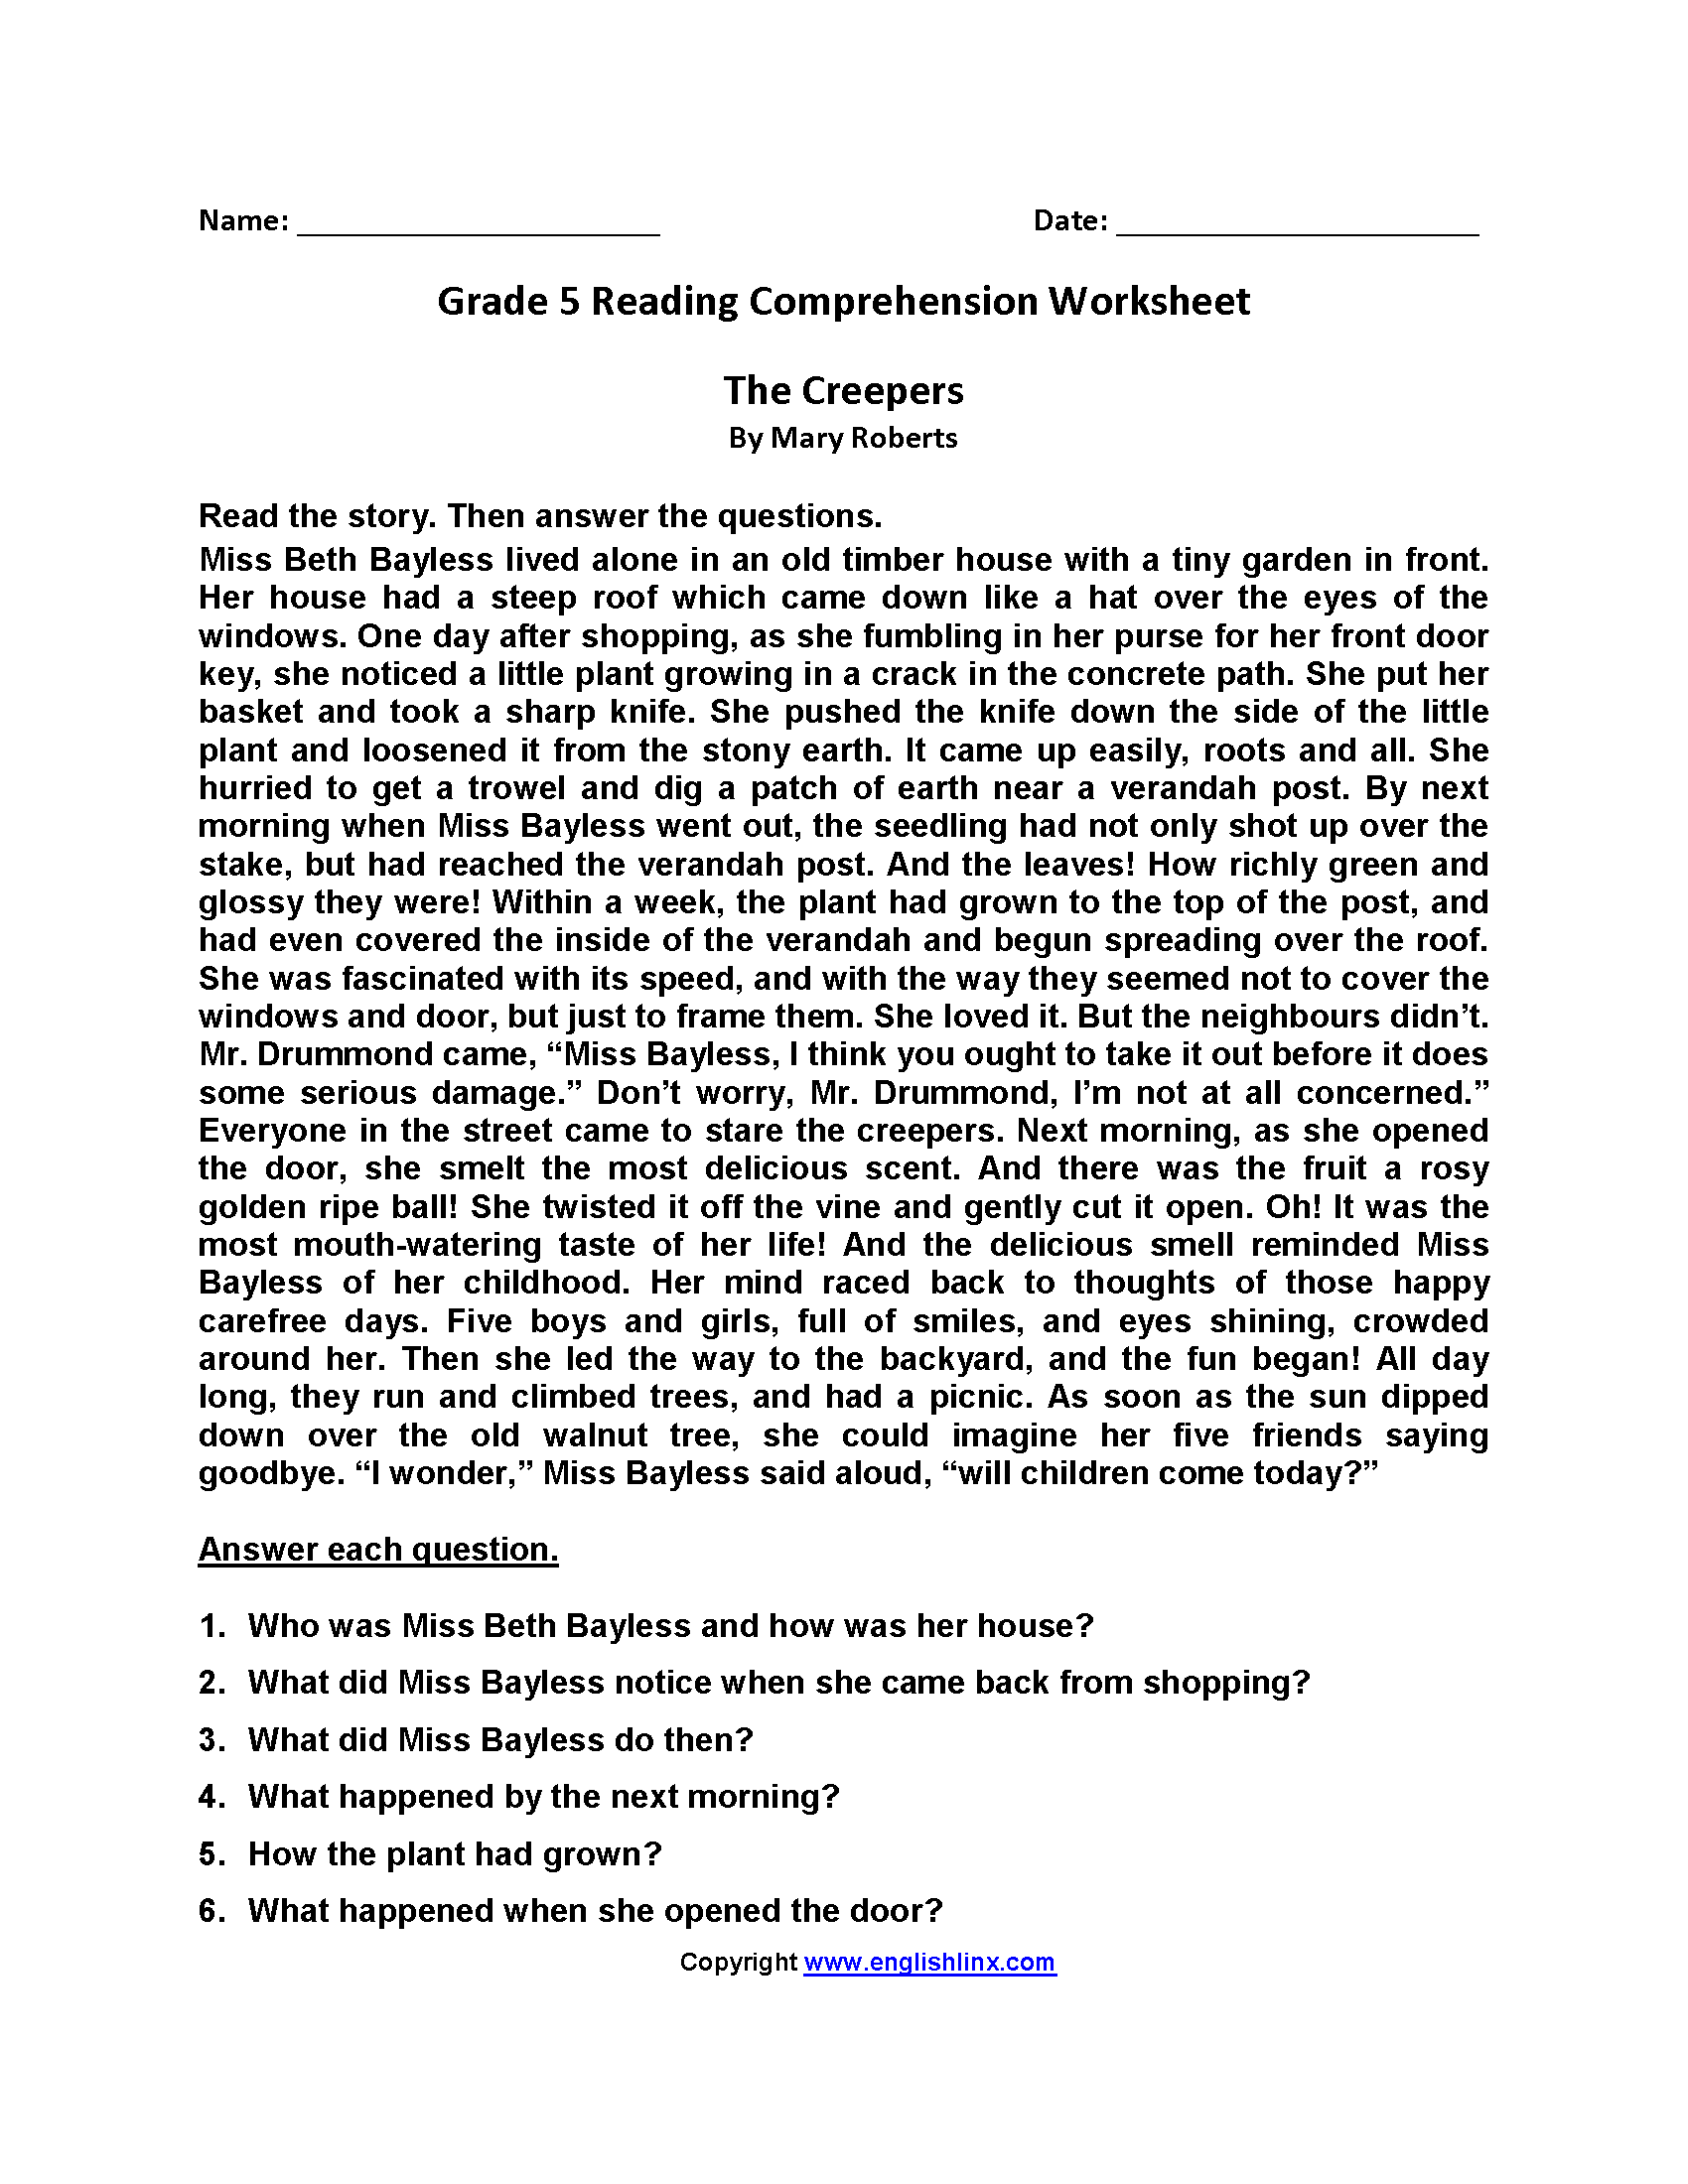 Comprehension Exercise For Grade 5 - Favorite Worksheet